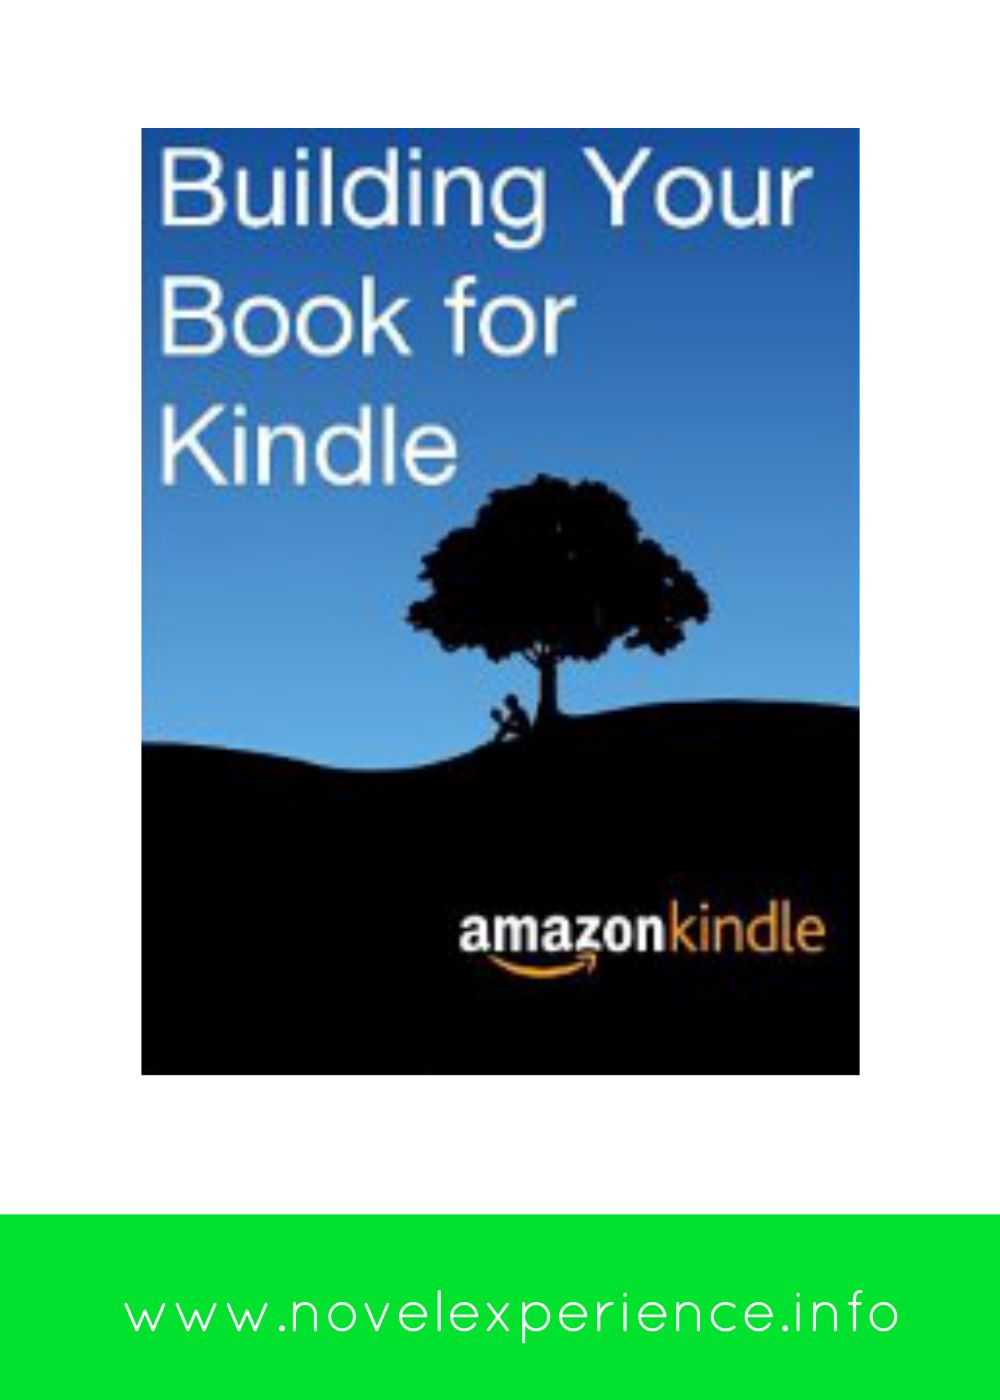 http://georiot.co/2FLh This free guide will walk you through the necessary steps in creating a professional digital file of your book using Microsoft Word 2010 for quick upload to Kindle Direct Publishing. Hazel Longuet: Rating 8/10